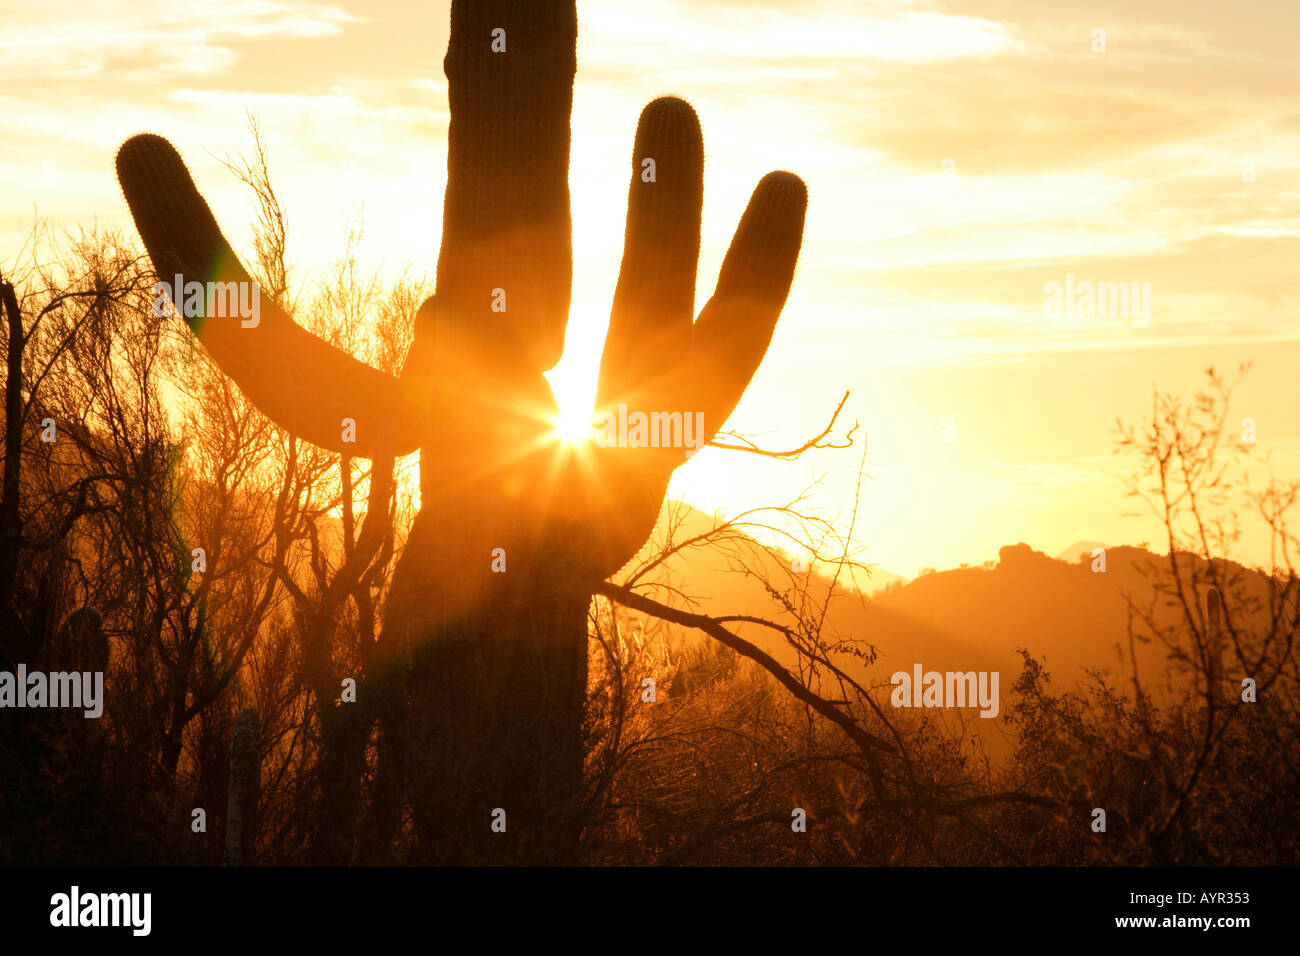 A saguaro cactus in southern Arizona s Sonoran desert backlit by the setting sun - Stock Image